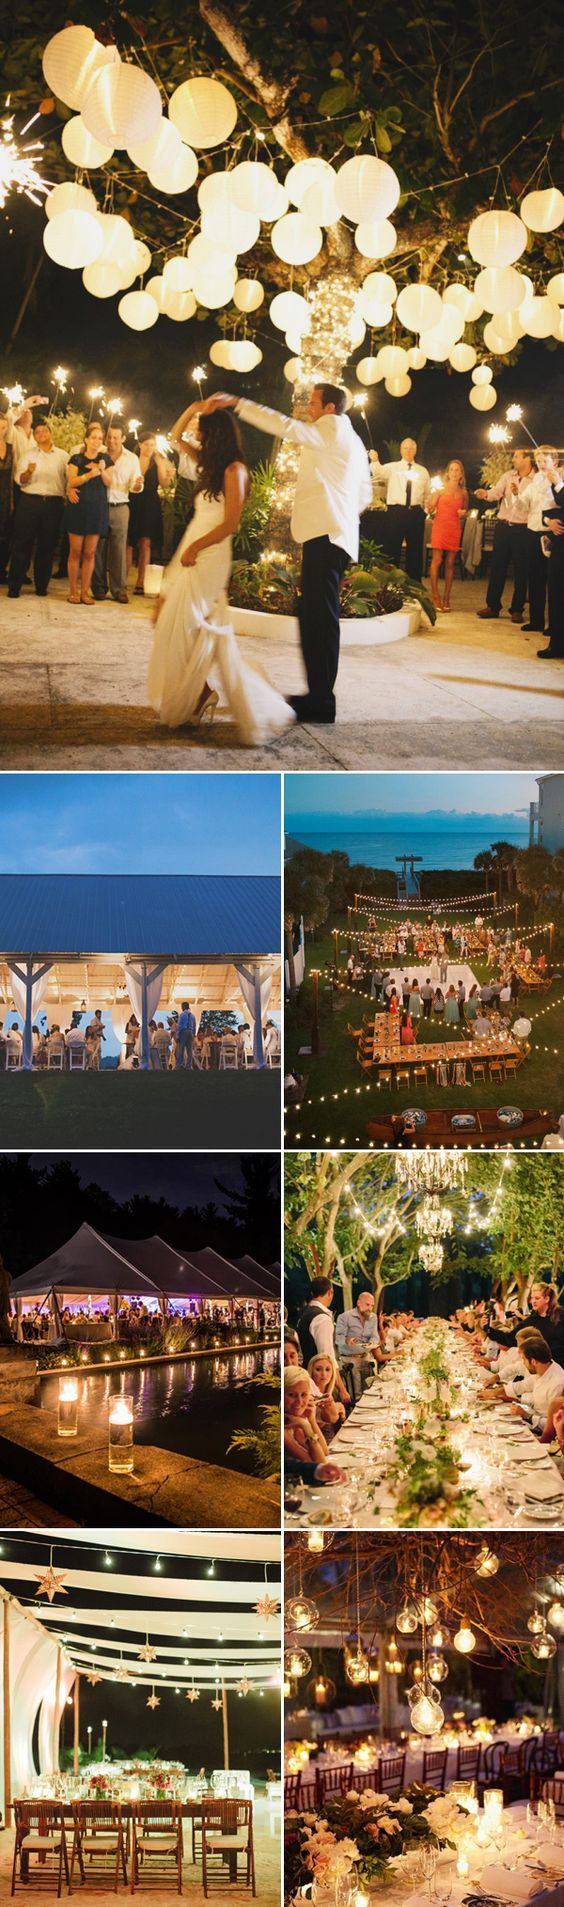 1000+ ideas about Intimate Wedding Reception on Pinterest ...